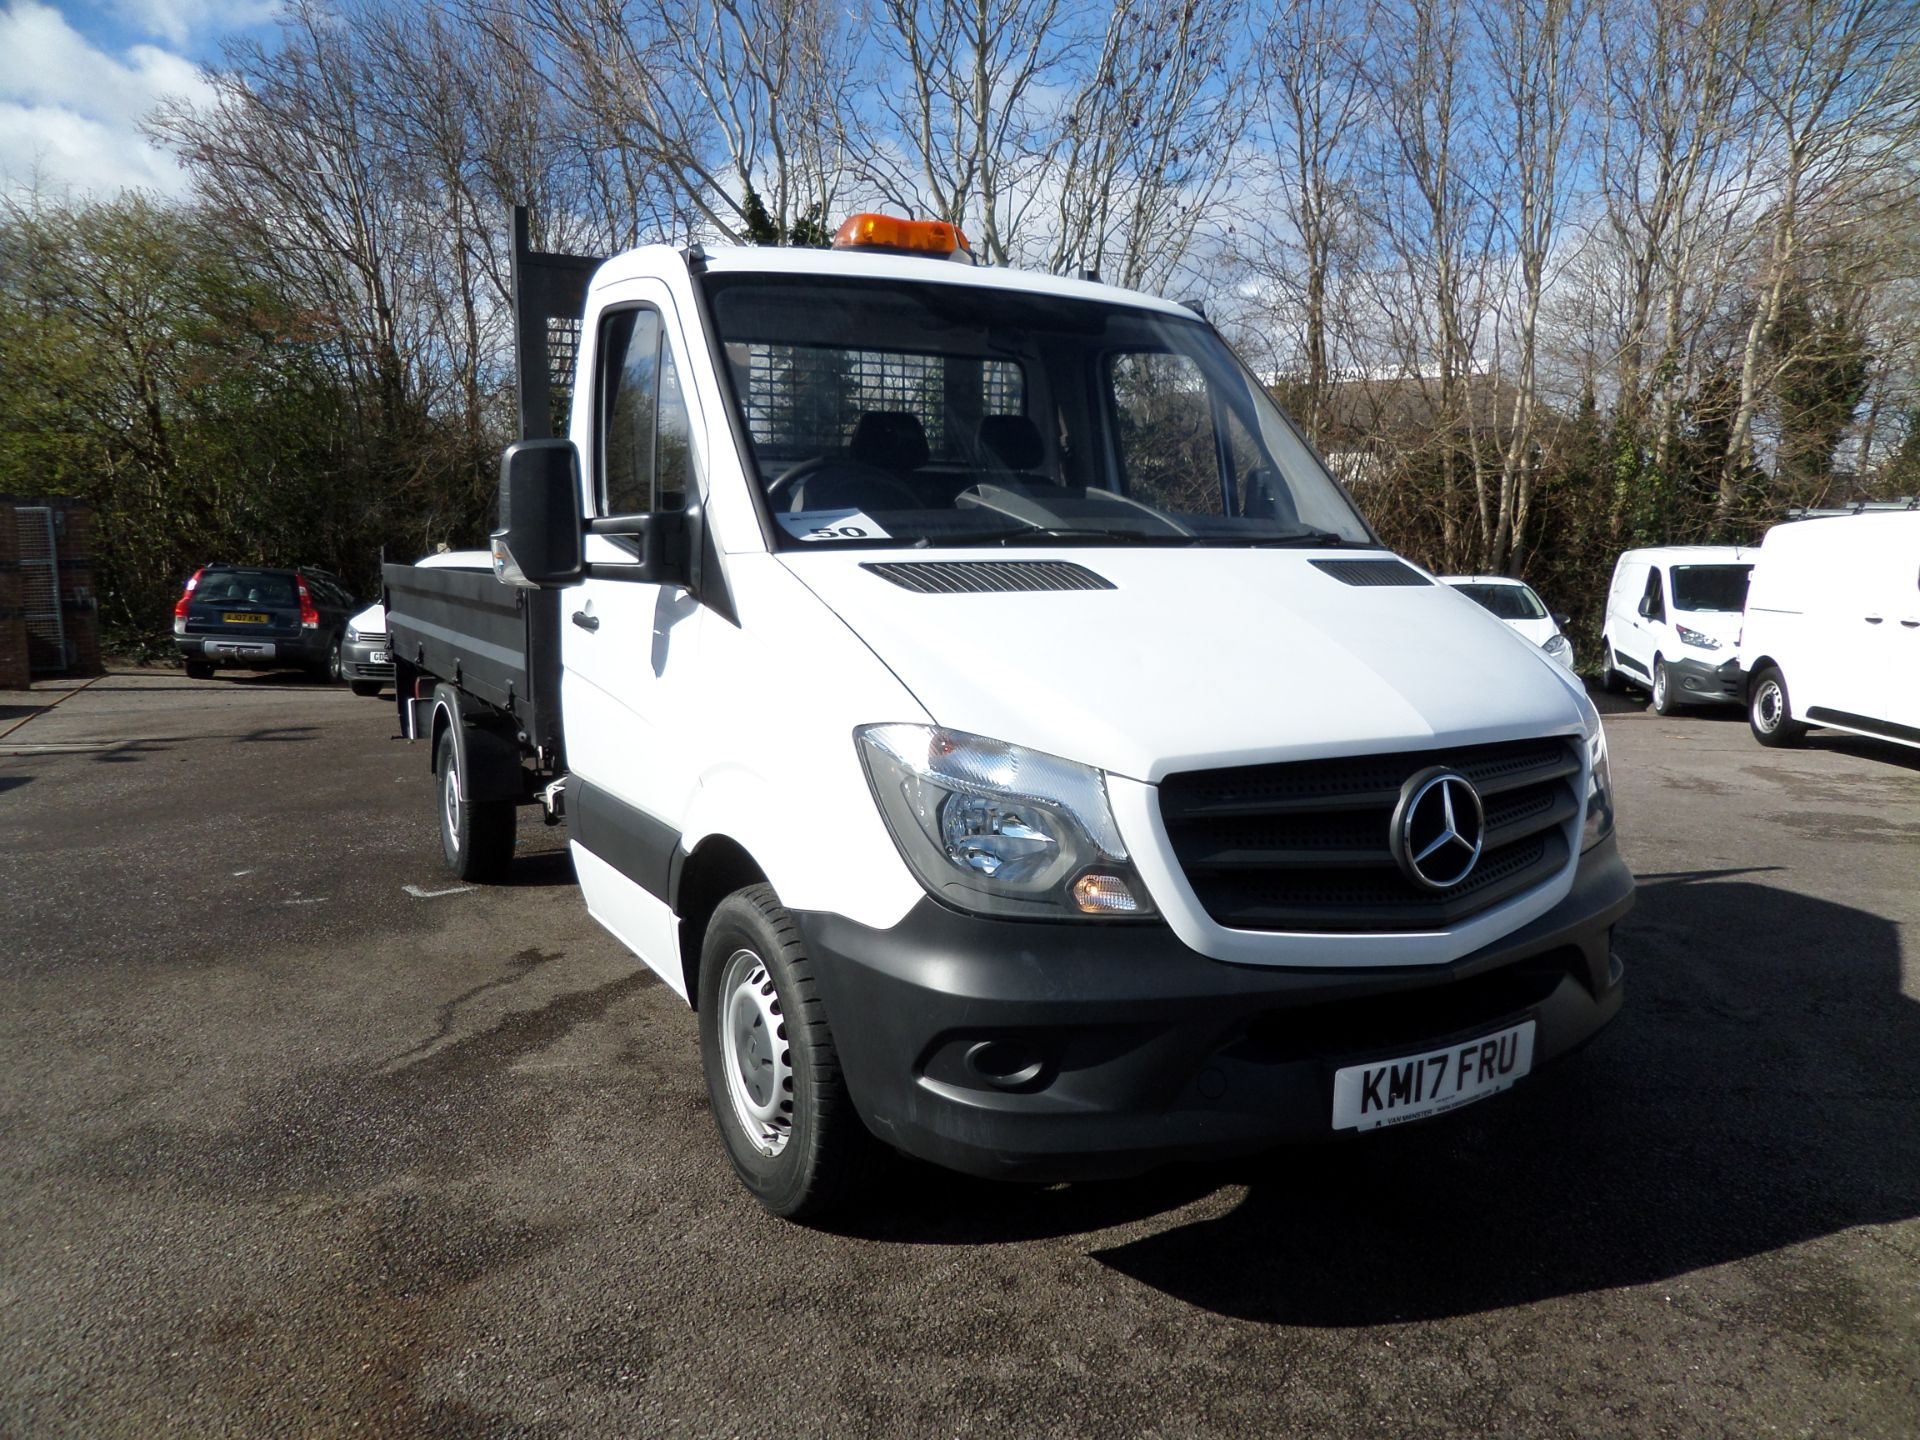 2017 Mercedes-Benz Sprinter 314 CDI Single Cab Tipper Euro 6 (KM17FRU)